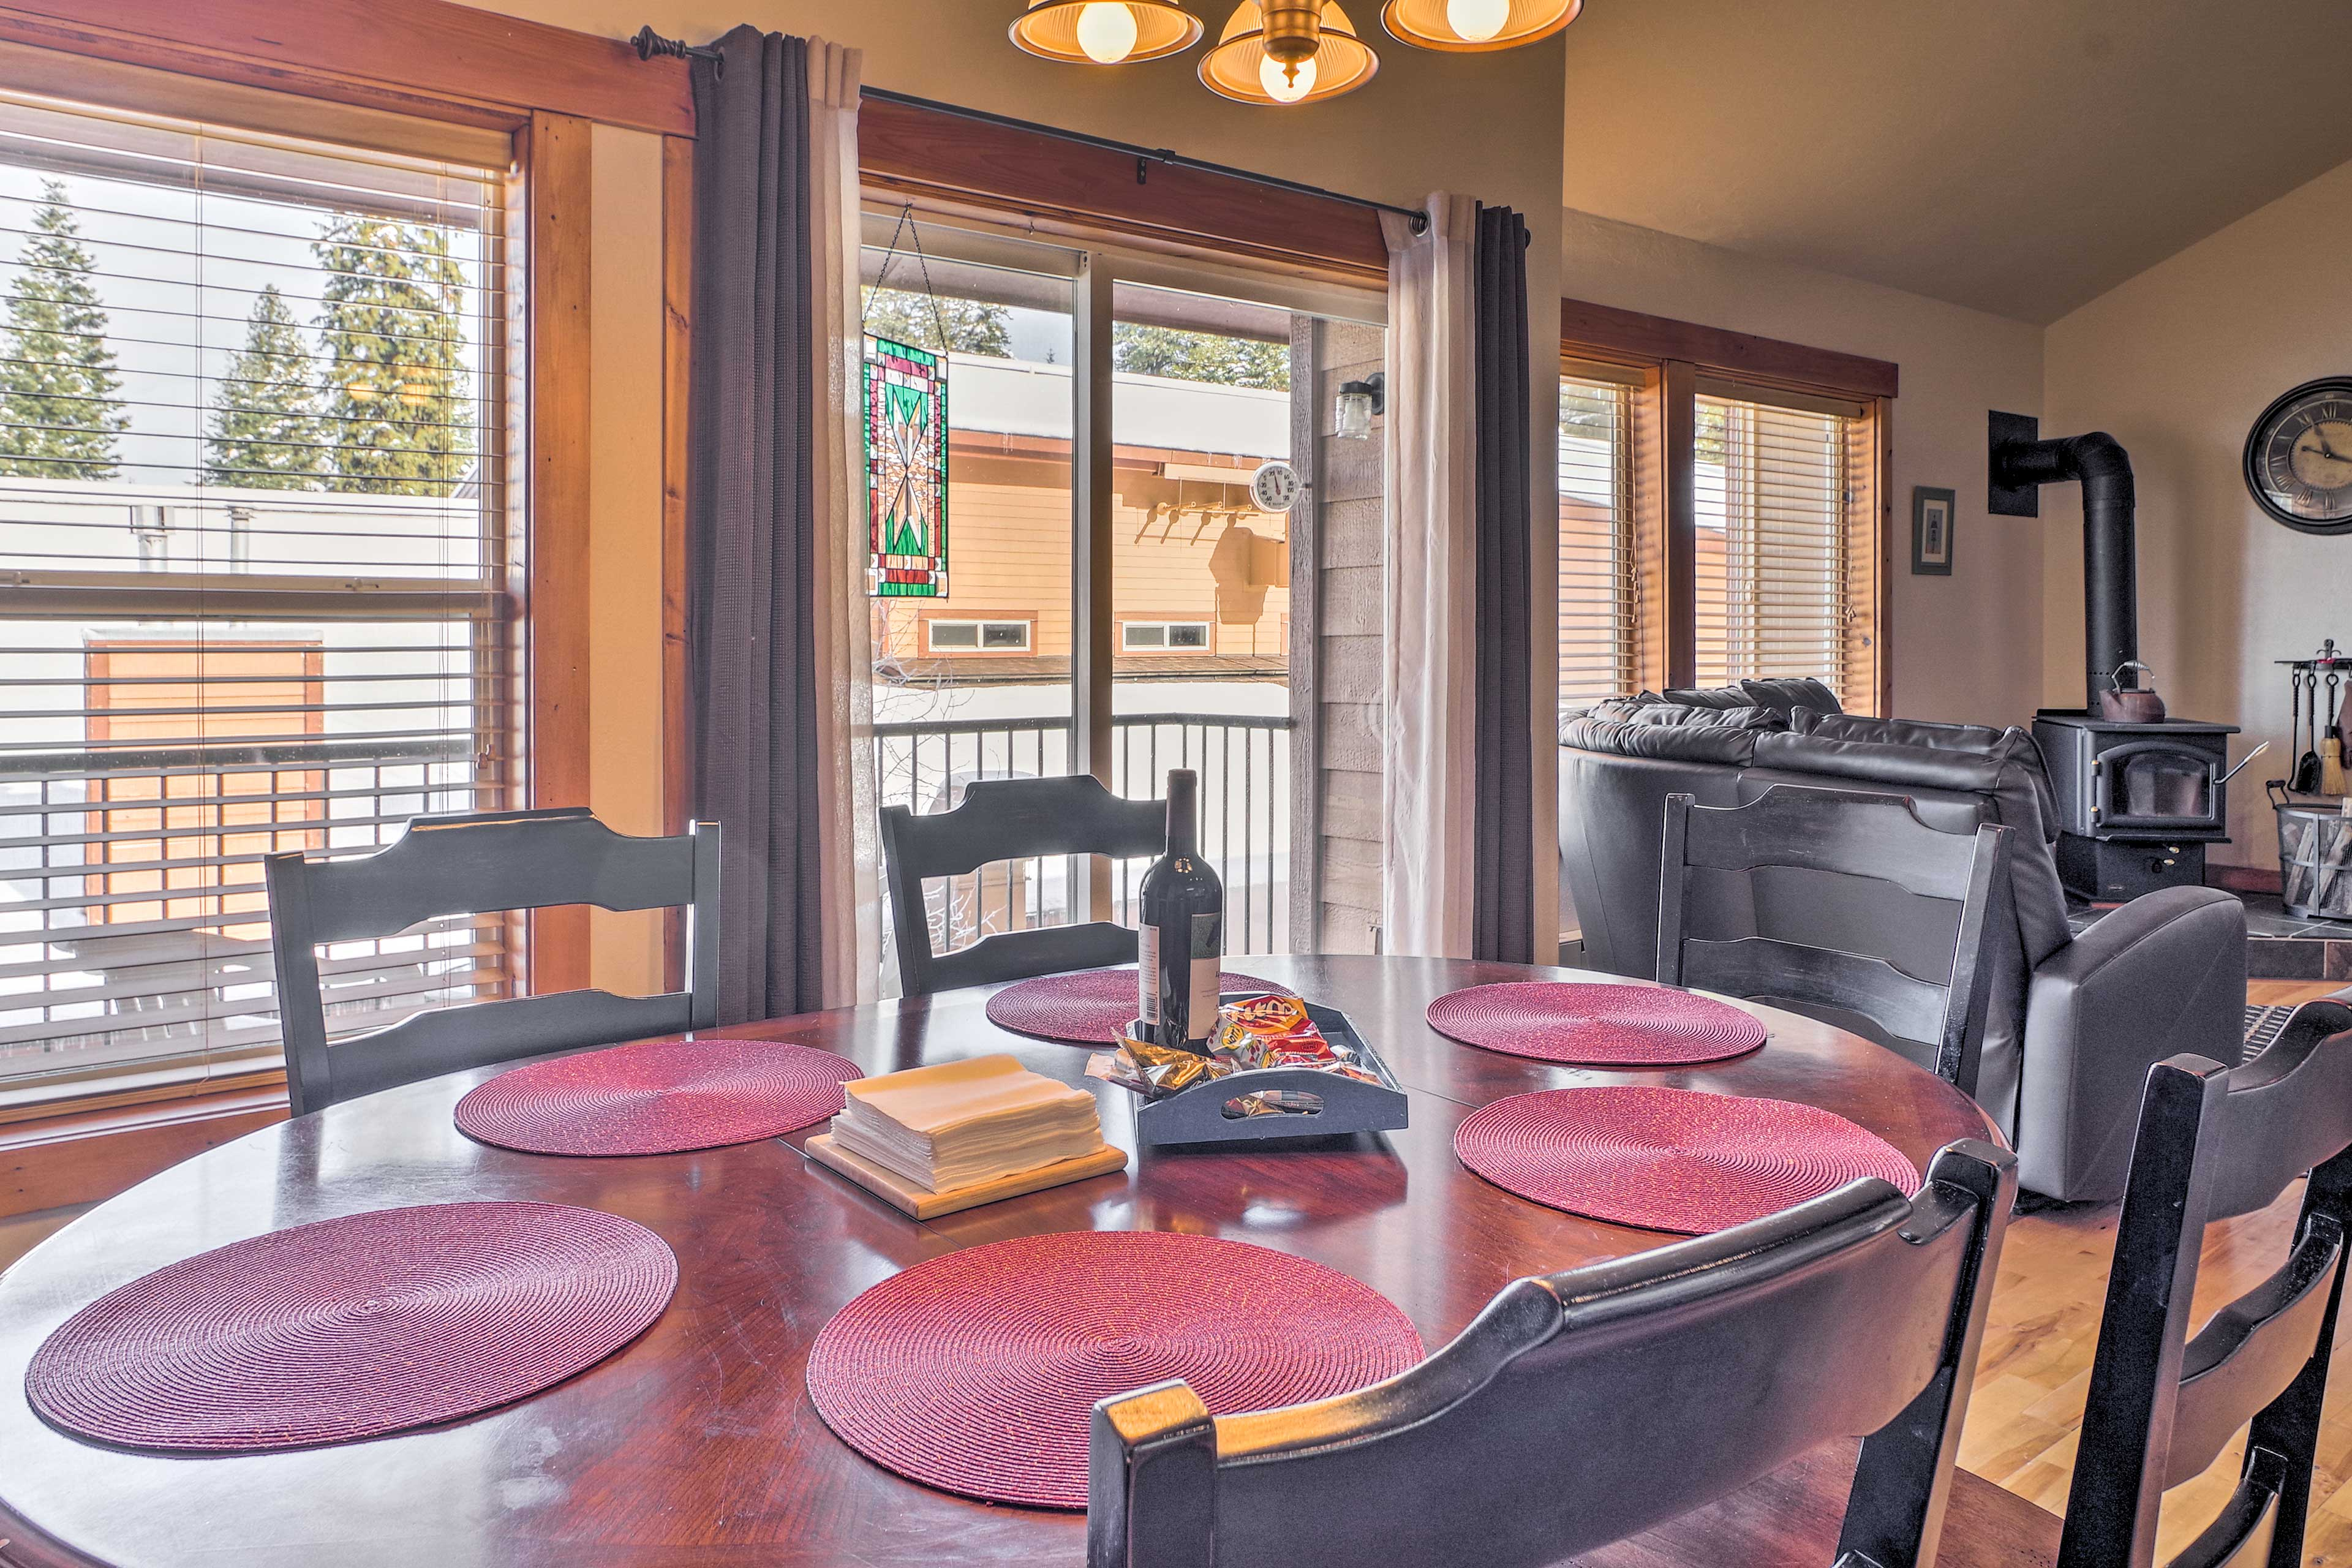 Share delicious home-cooked meals at the dining room table with seating for 6.